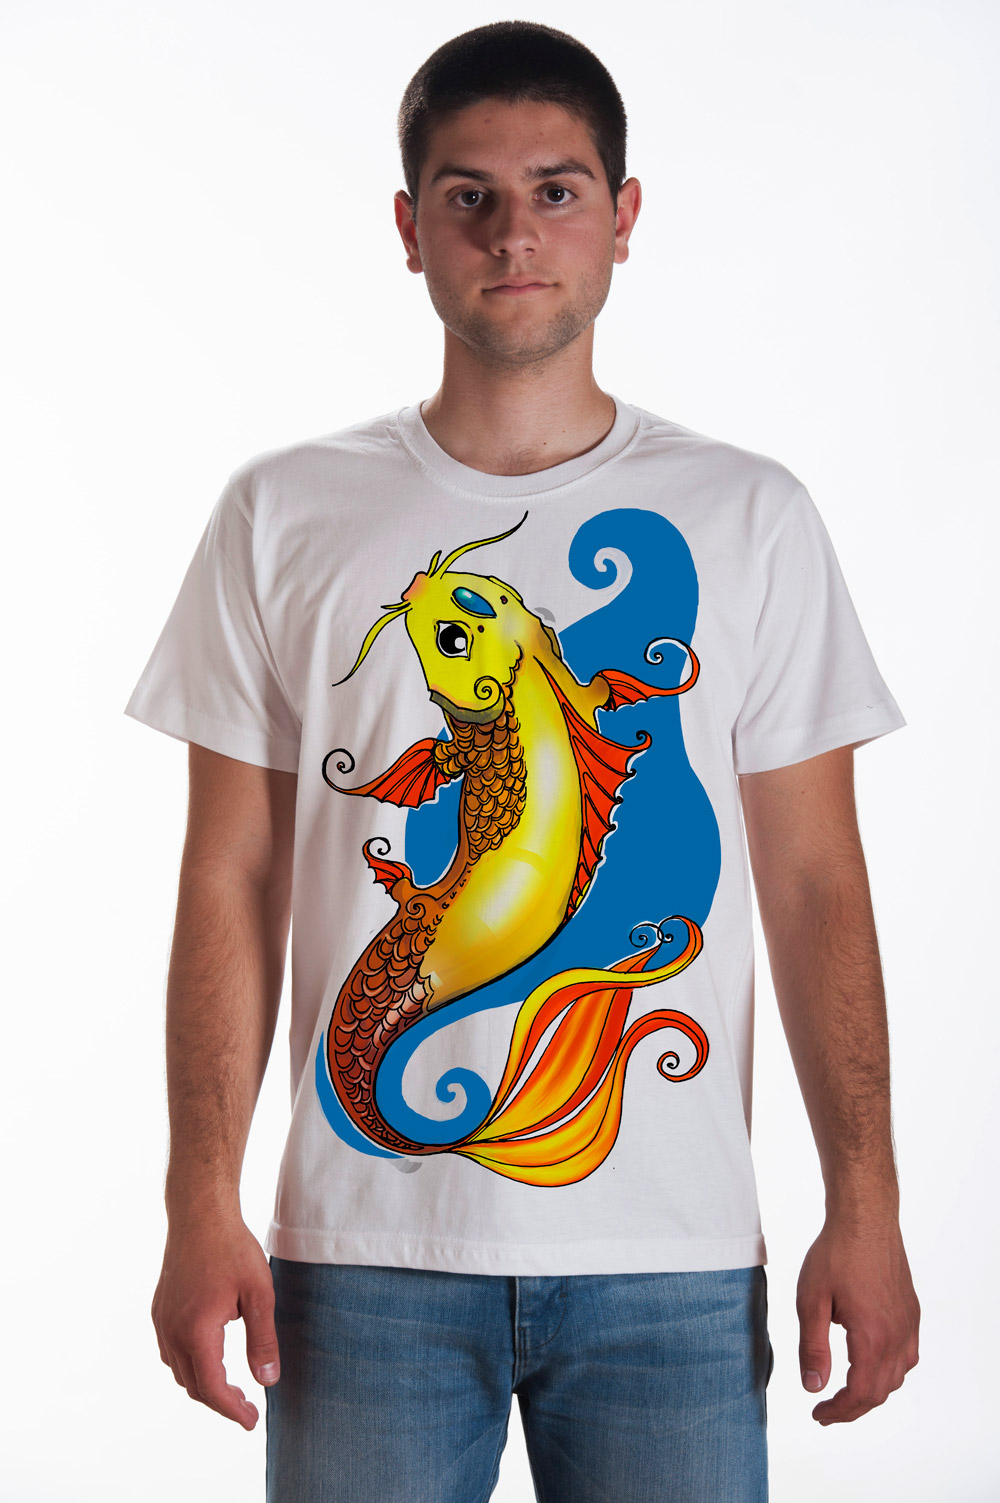 Koi Fish T shirt | Mythic Tee | Japanese Fish Tshirt | Unisex Fish Shirt